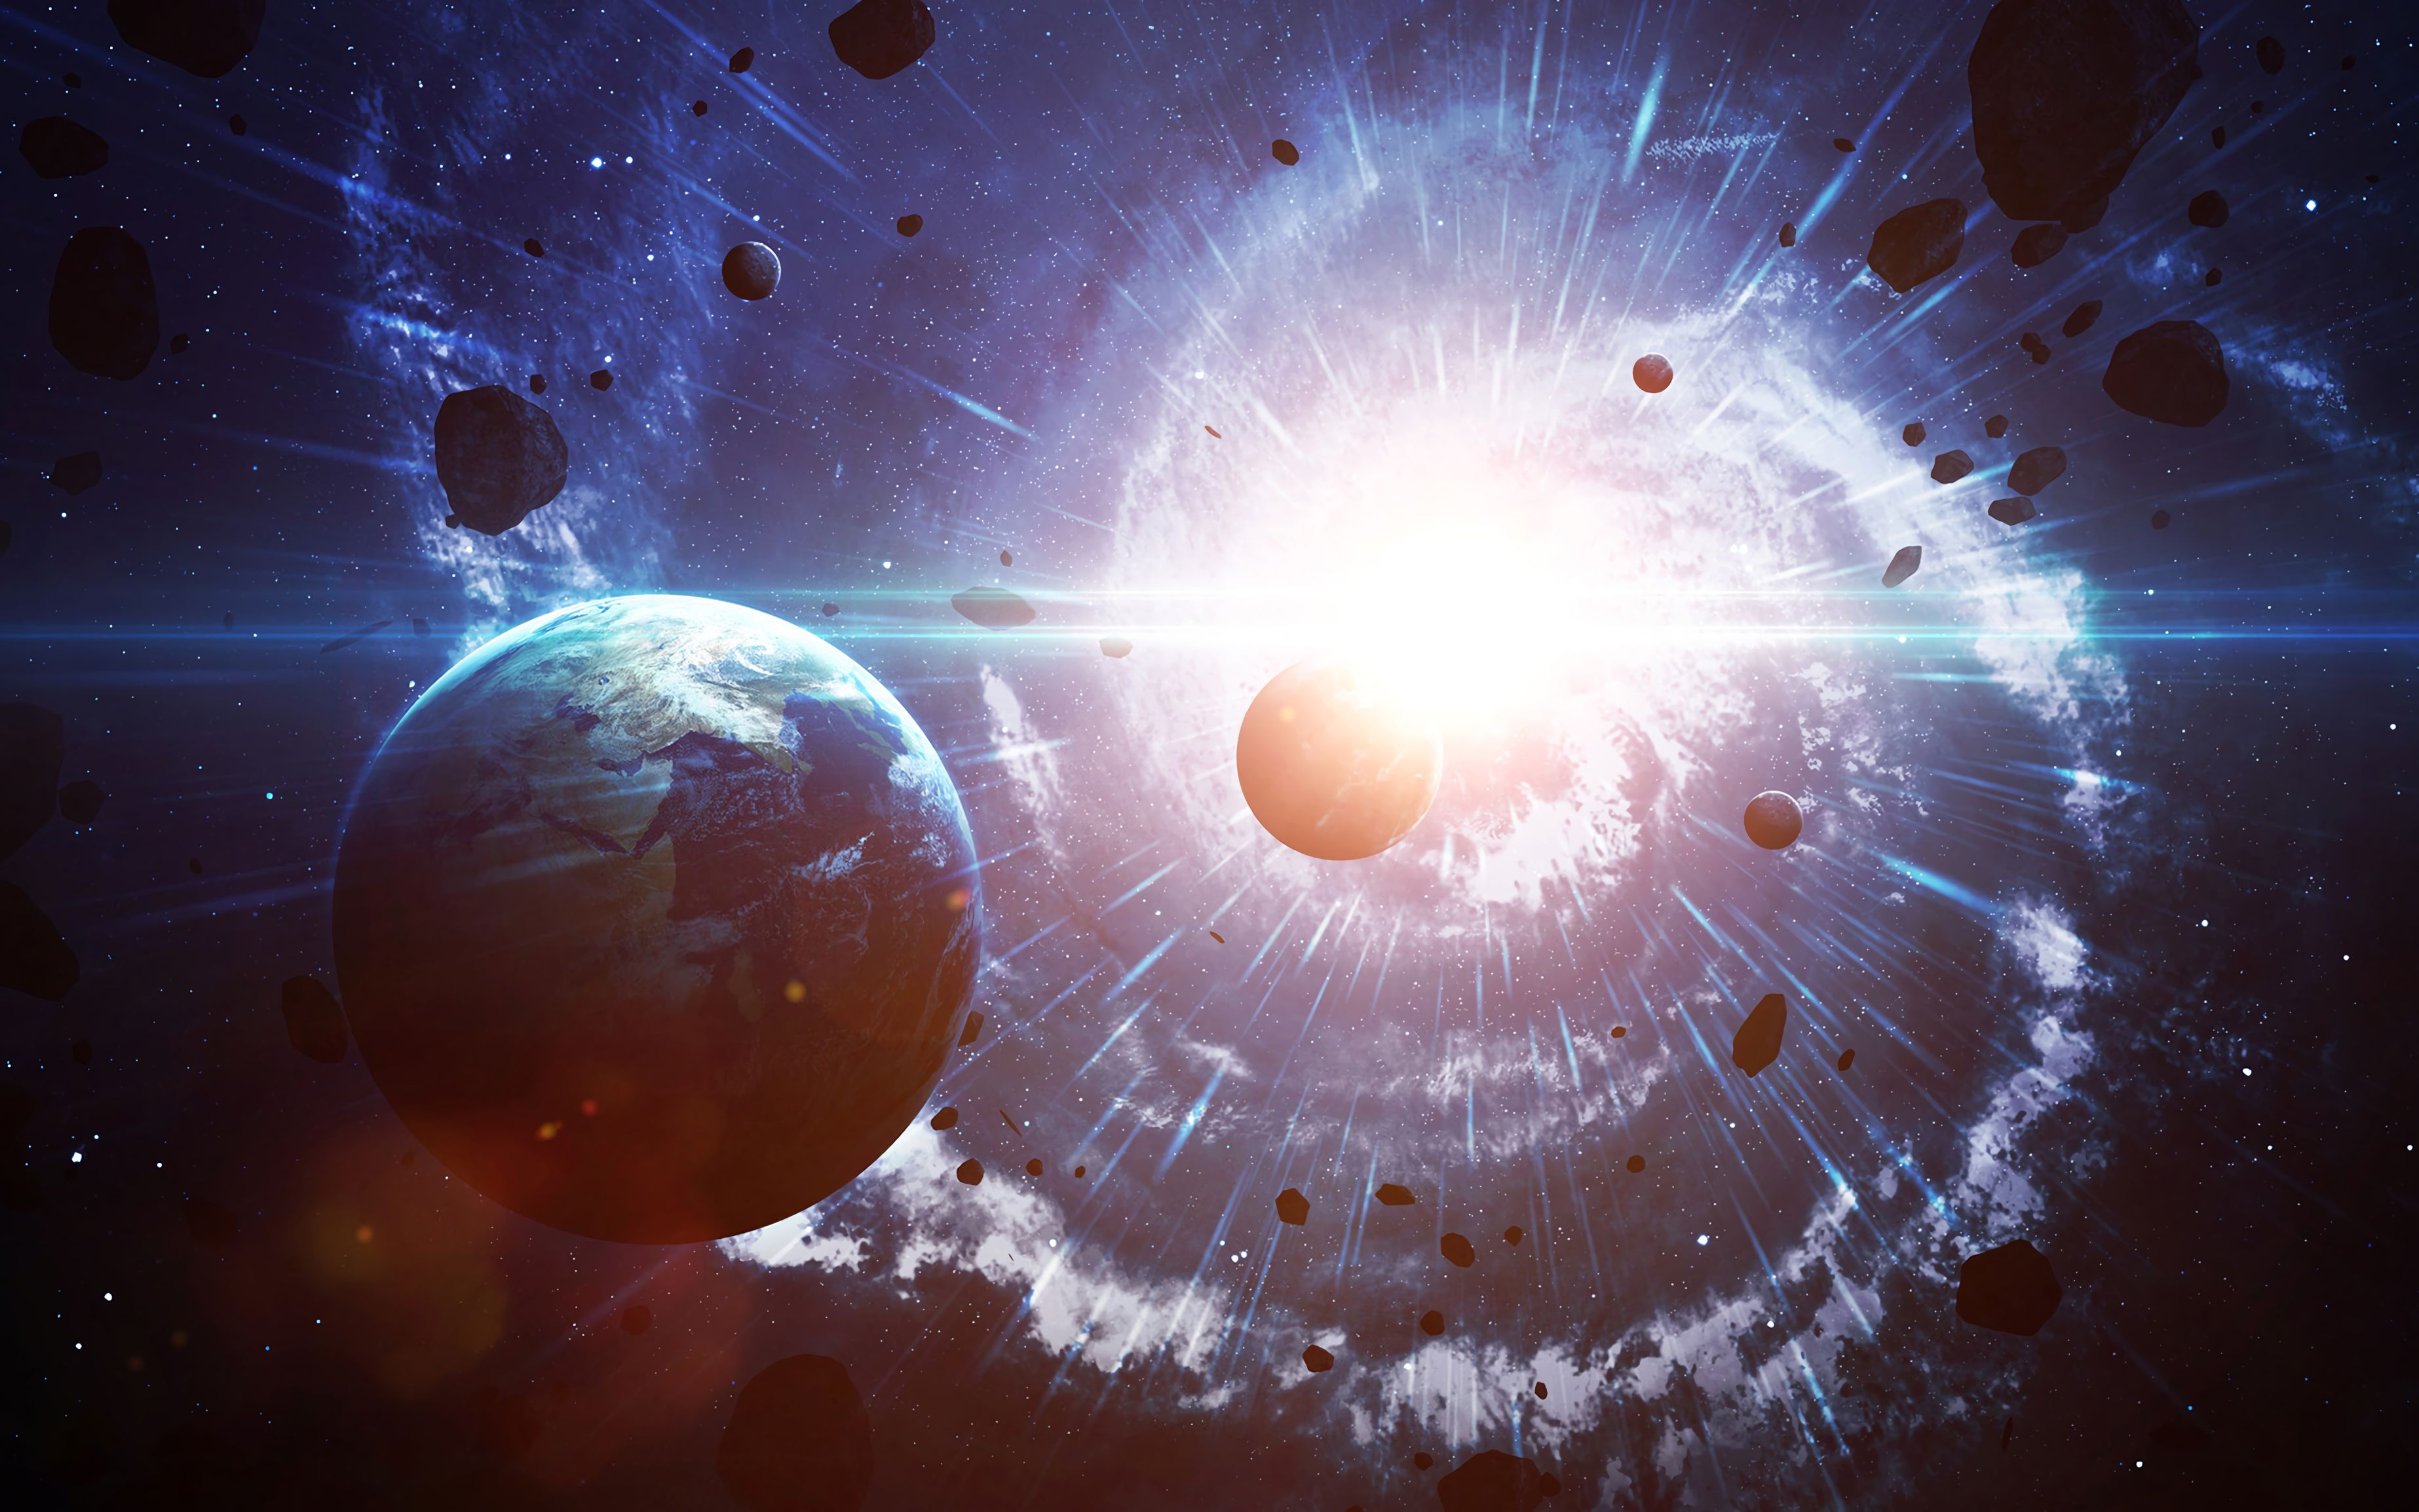 135245 download wallpaper Land, Earth, Planet, Asteroids, Beams, Rays, Glow, Universe screensavers and pictures for free